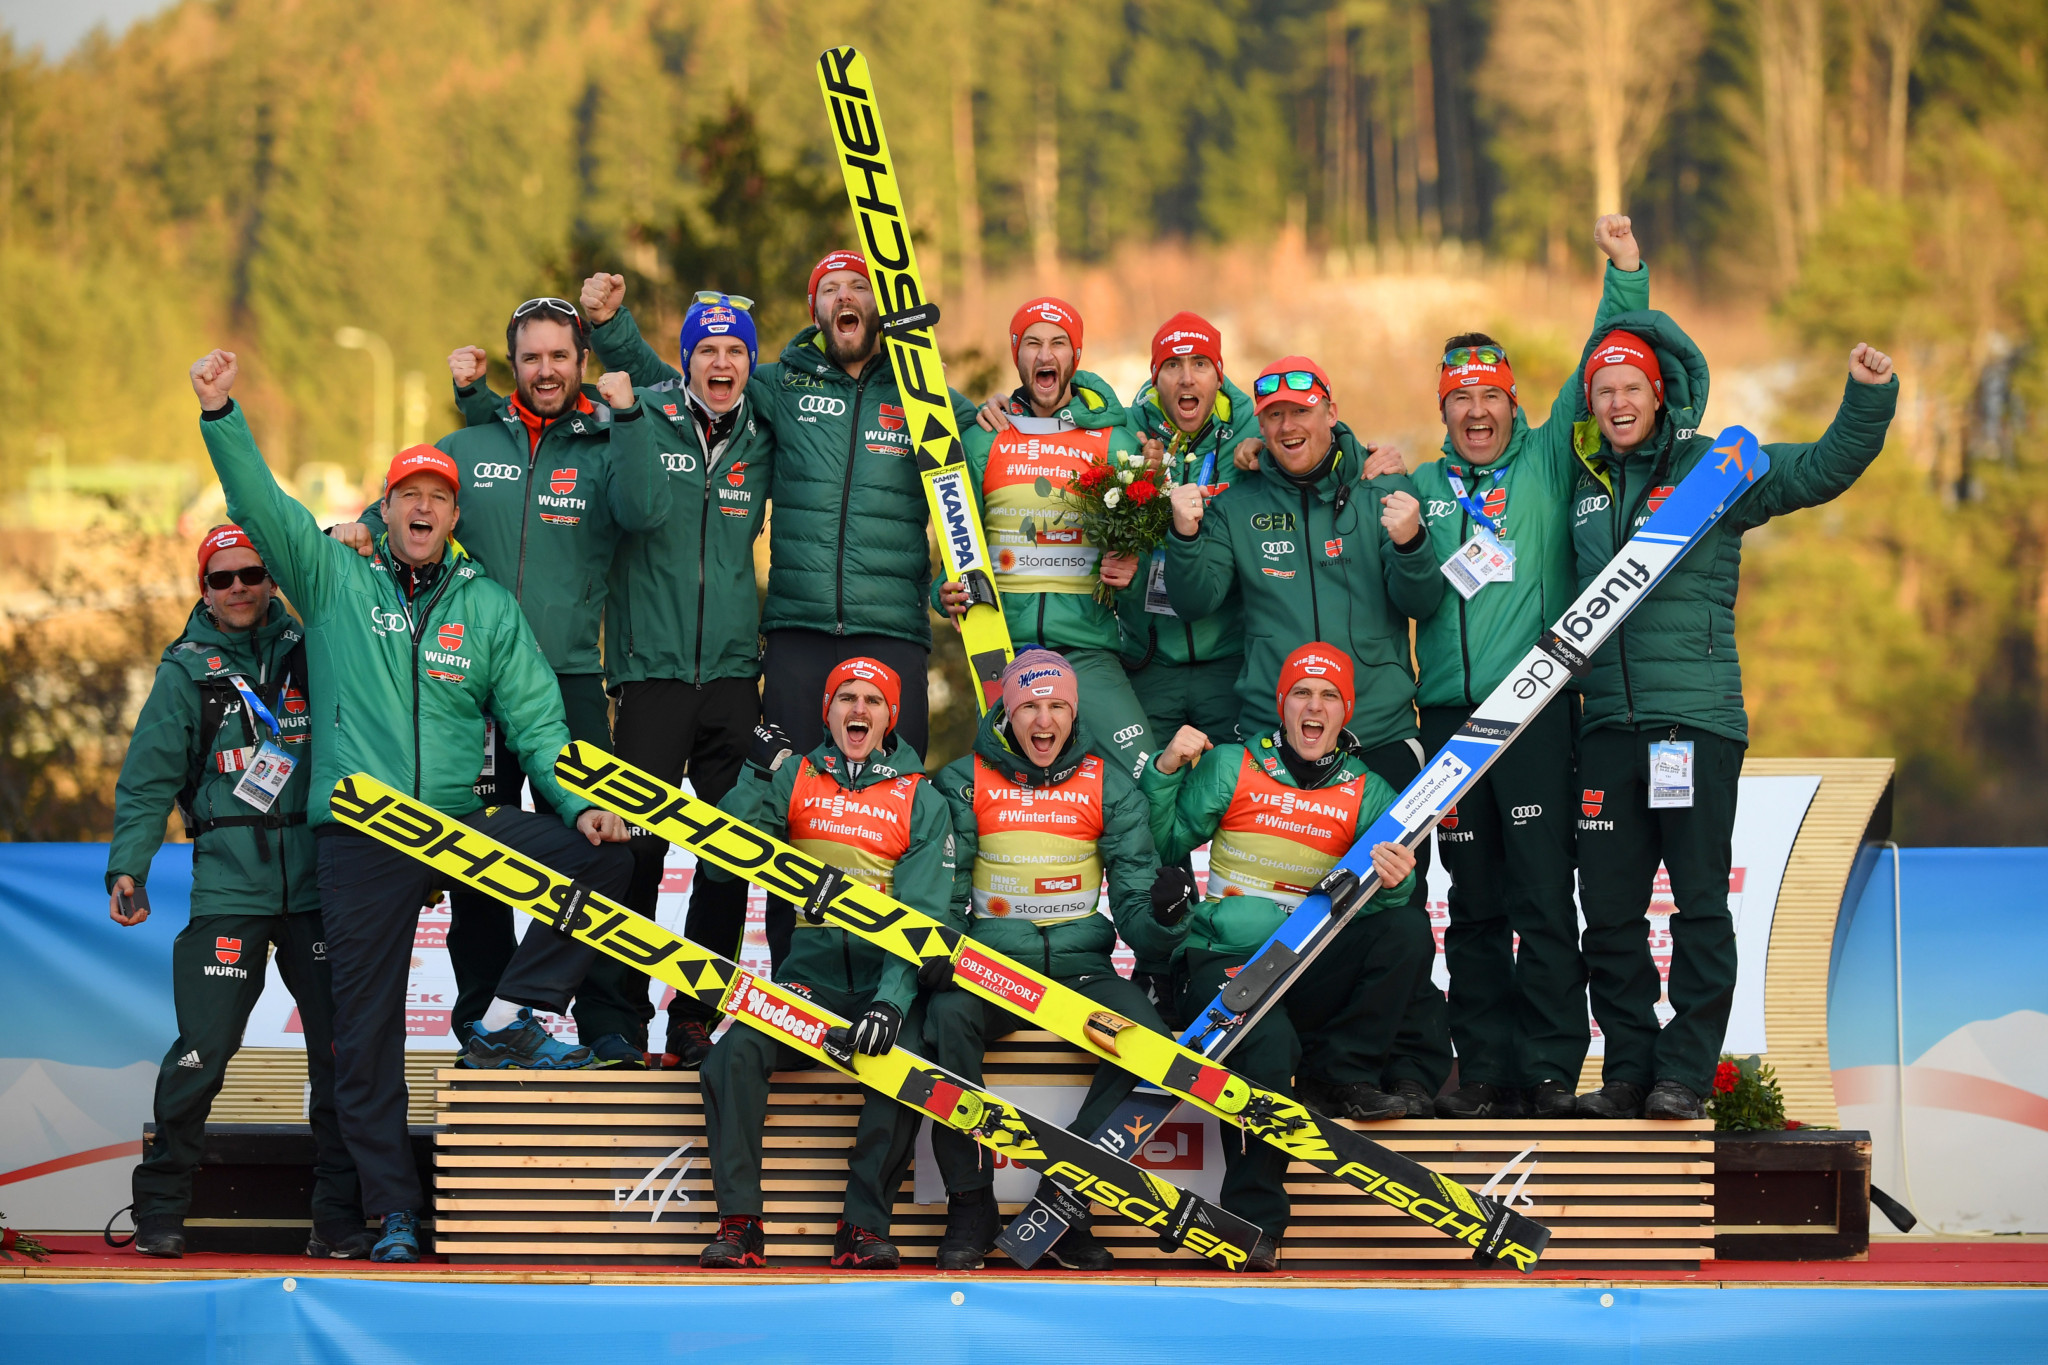 Germany emerged as the winners of the team ski jumping event ©Getty Images